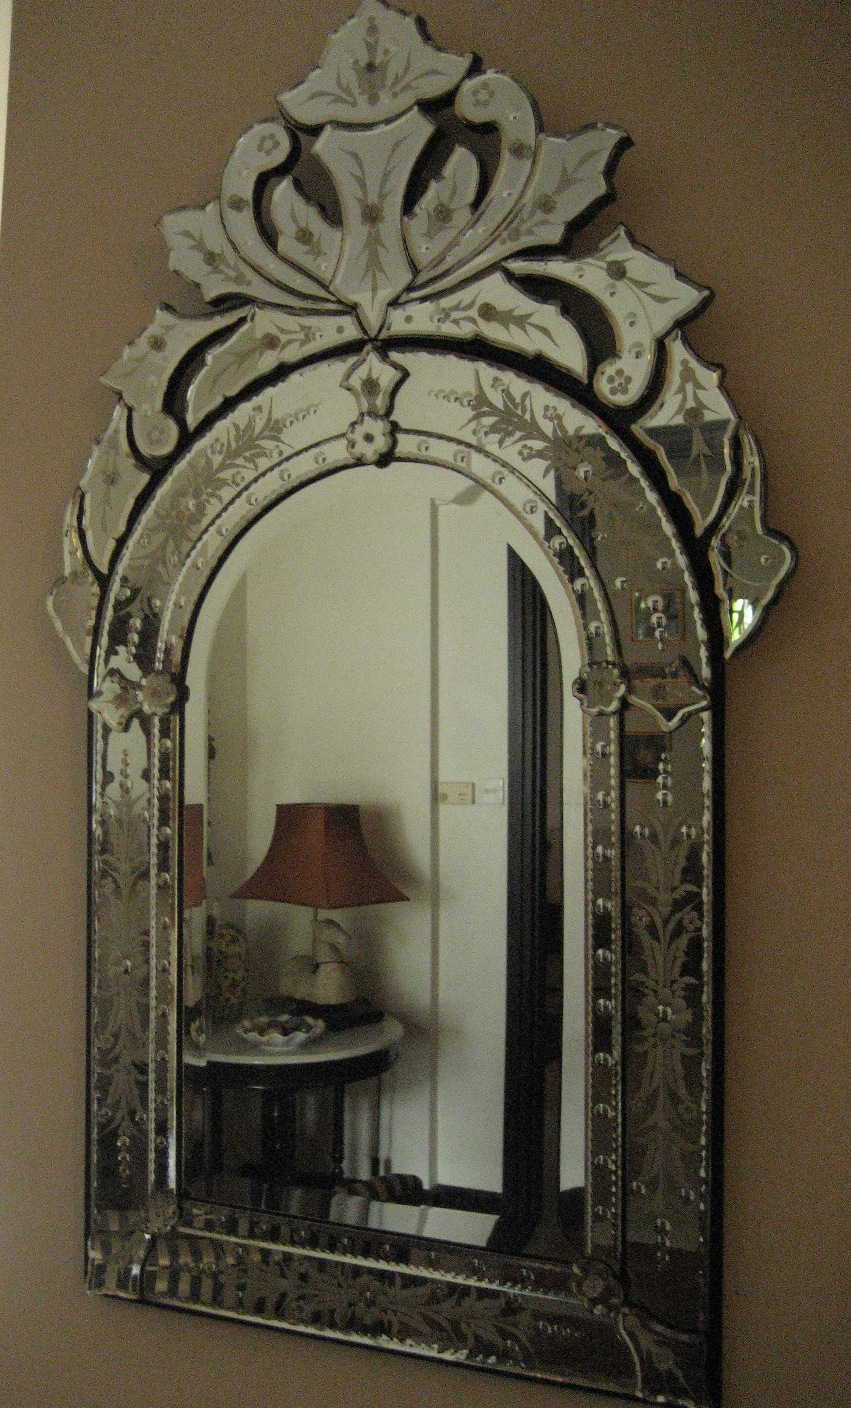 Decorative Mirror Malaysia Venetian Mirrors Home Decor Furnishings Sale In Kuala